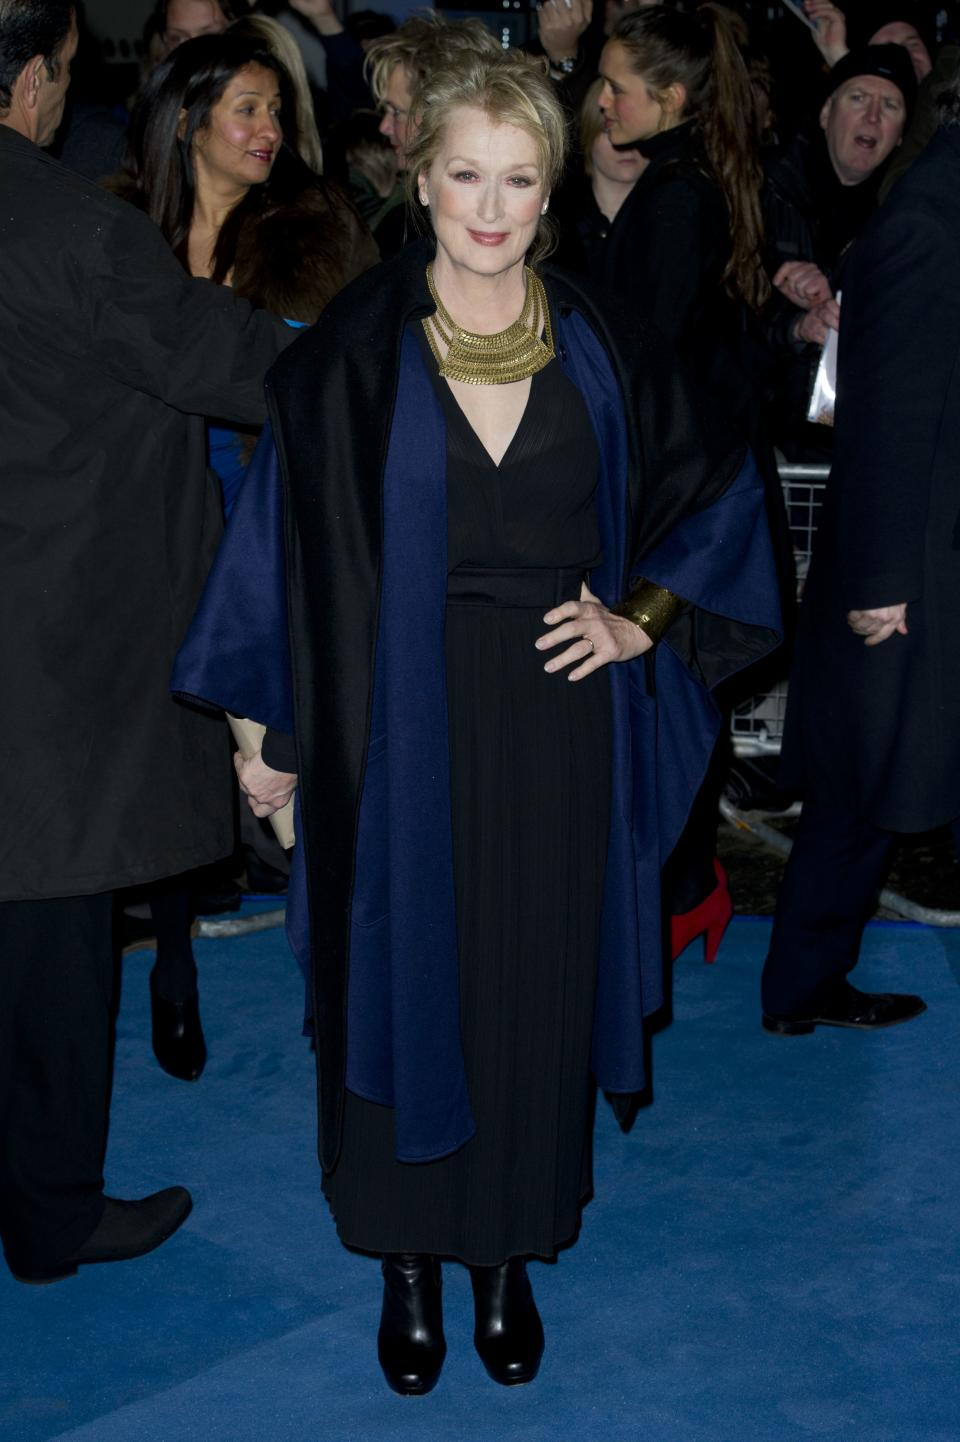 U.S actress Meryl Streep, arrives for the European premiere of The Iron Lady, at a central London venue, Wednesday, Jan. 4, 2012. (AP Photo/Jonathan Short)